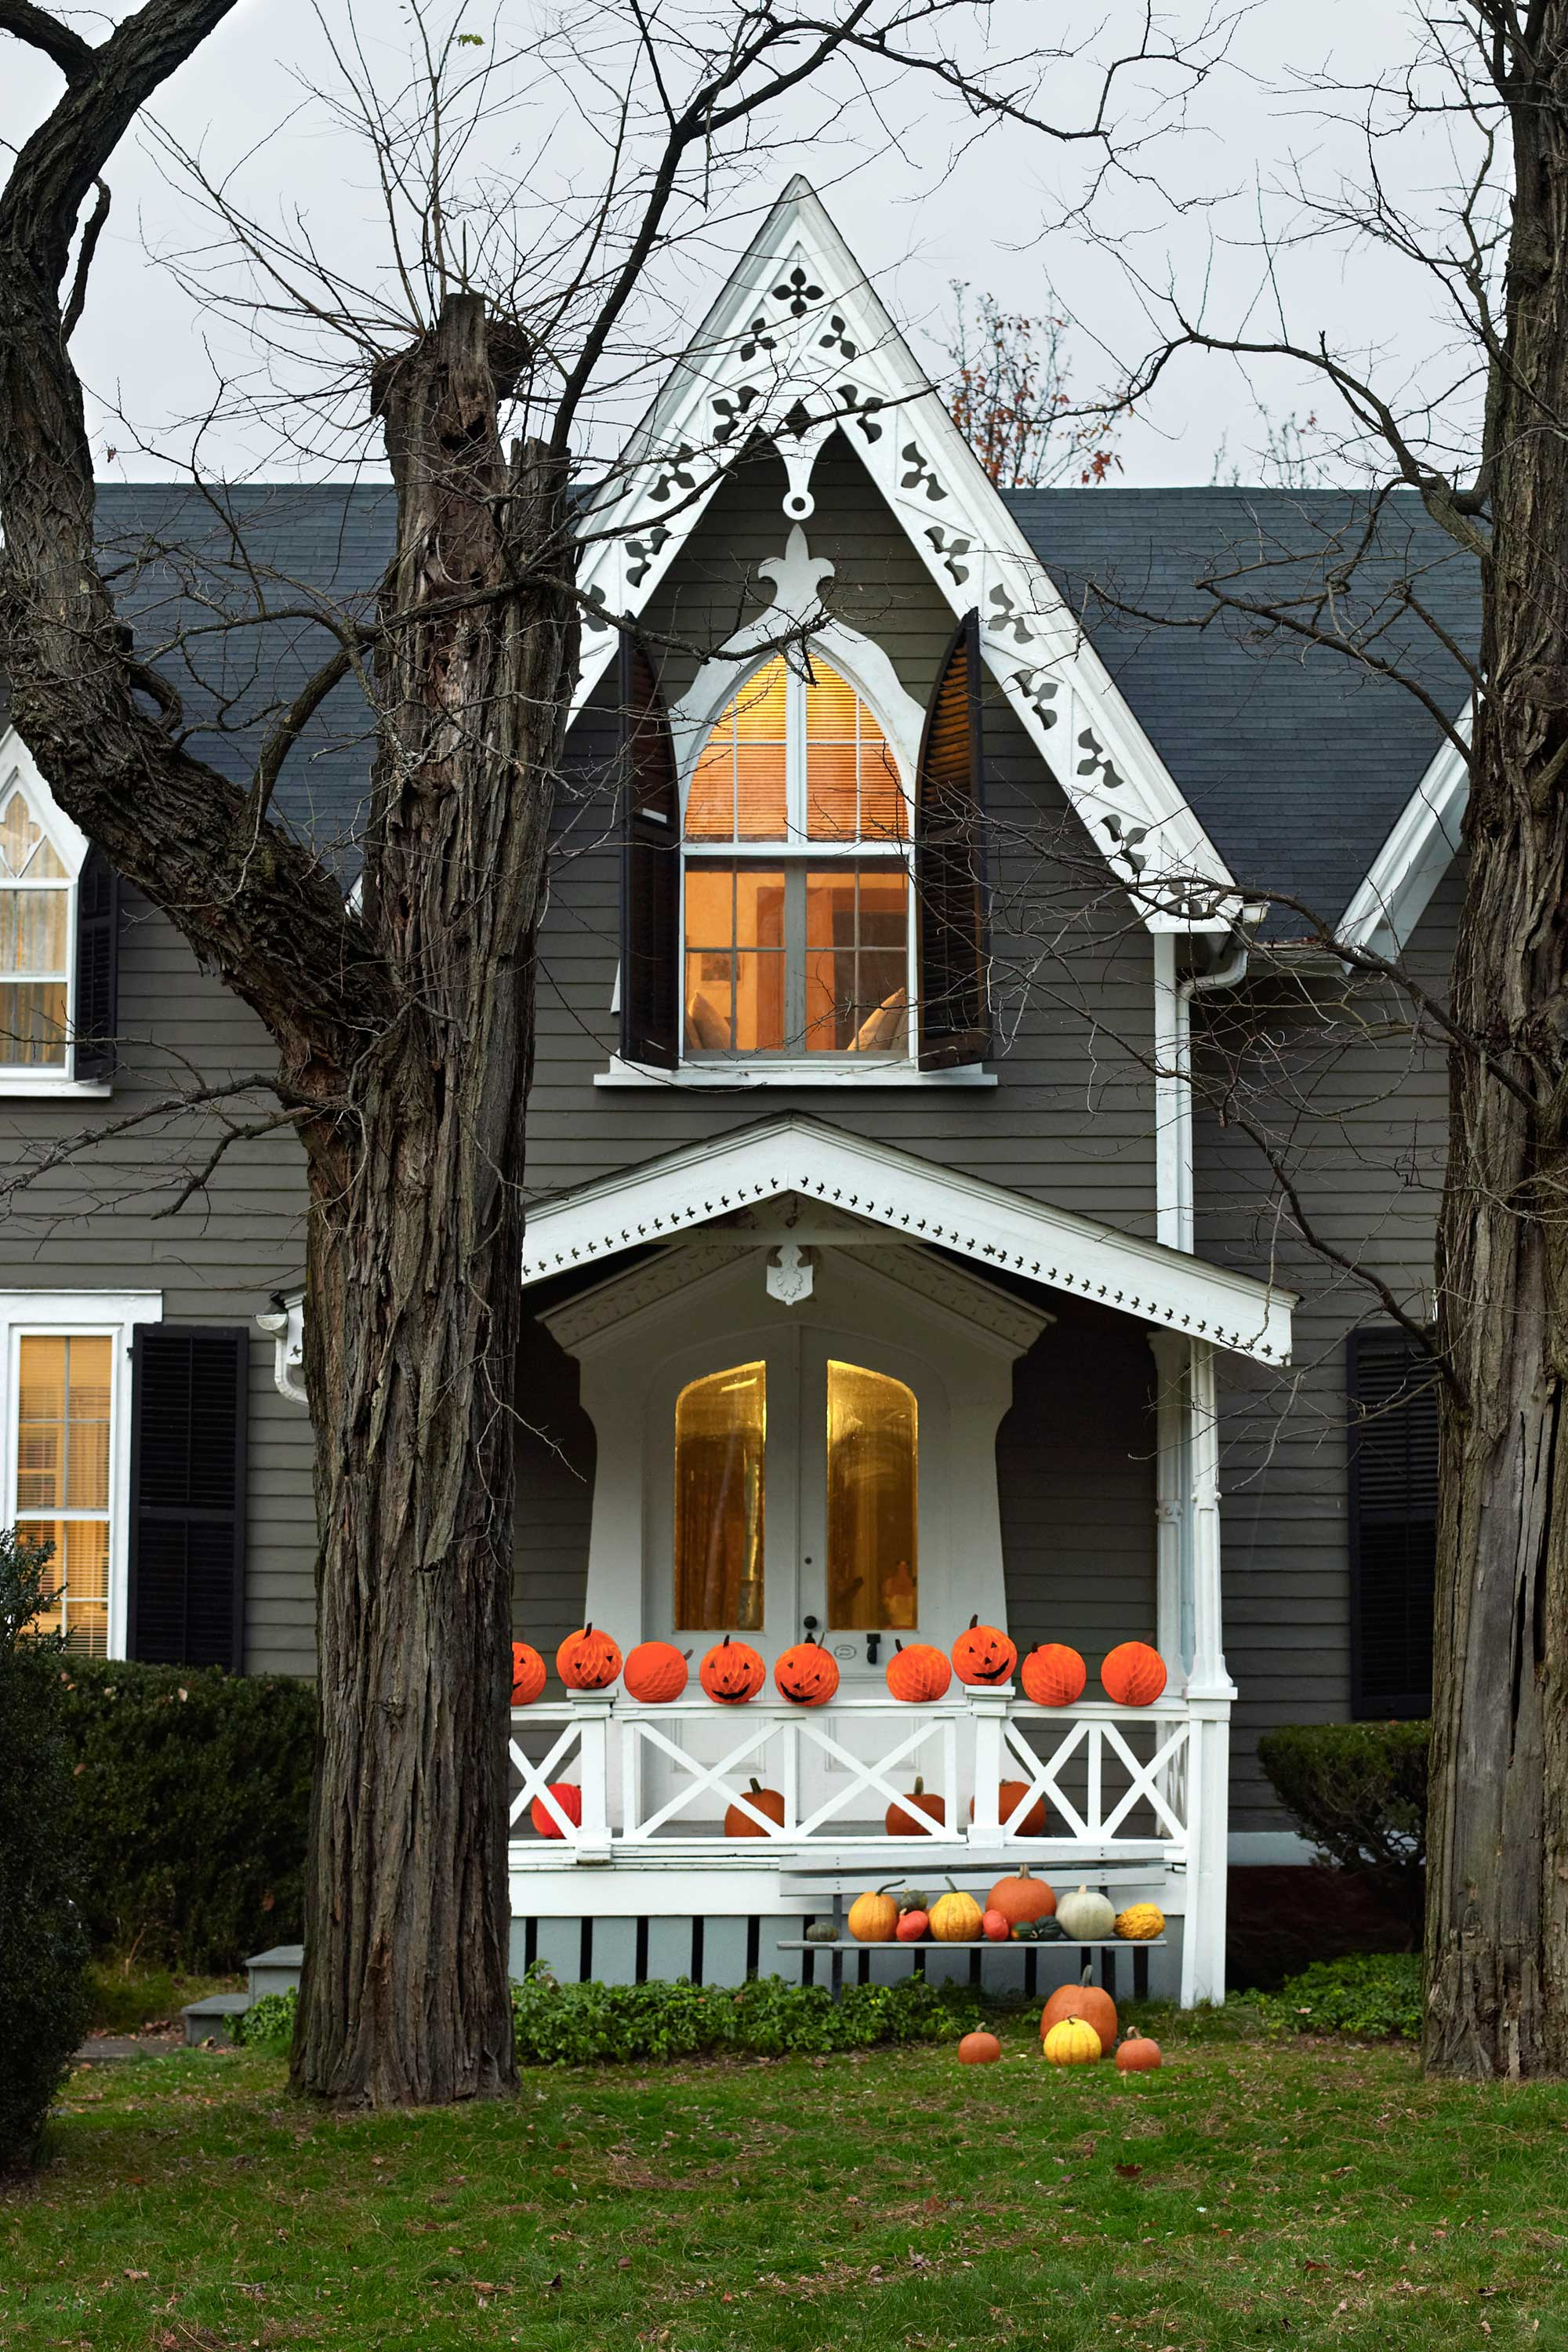 Uncategorized Decorate House For Halloween 30 best outdoor halloween decoration ideas easy yard and porch decor